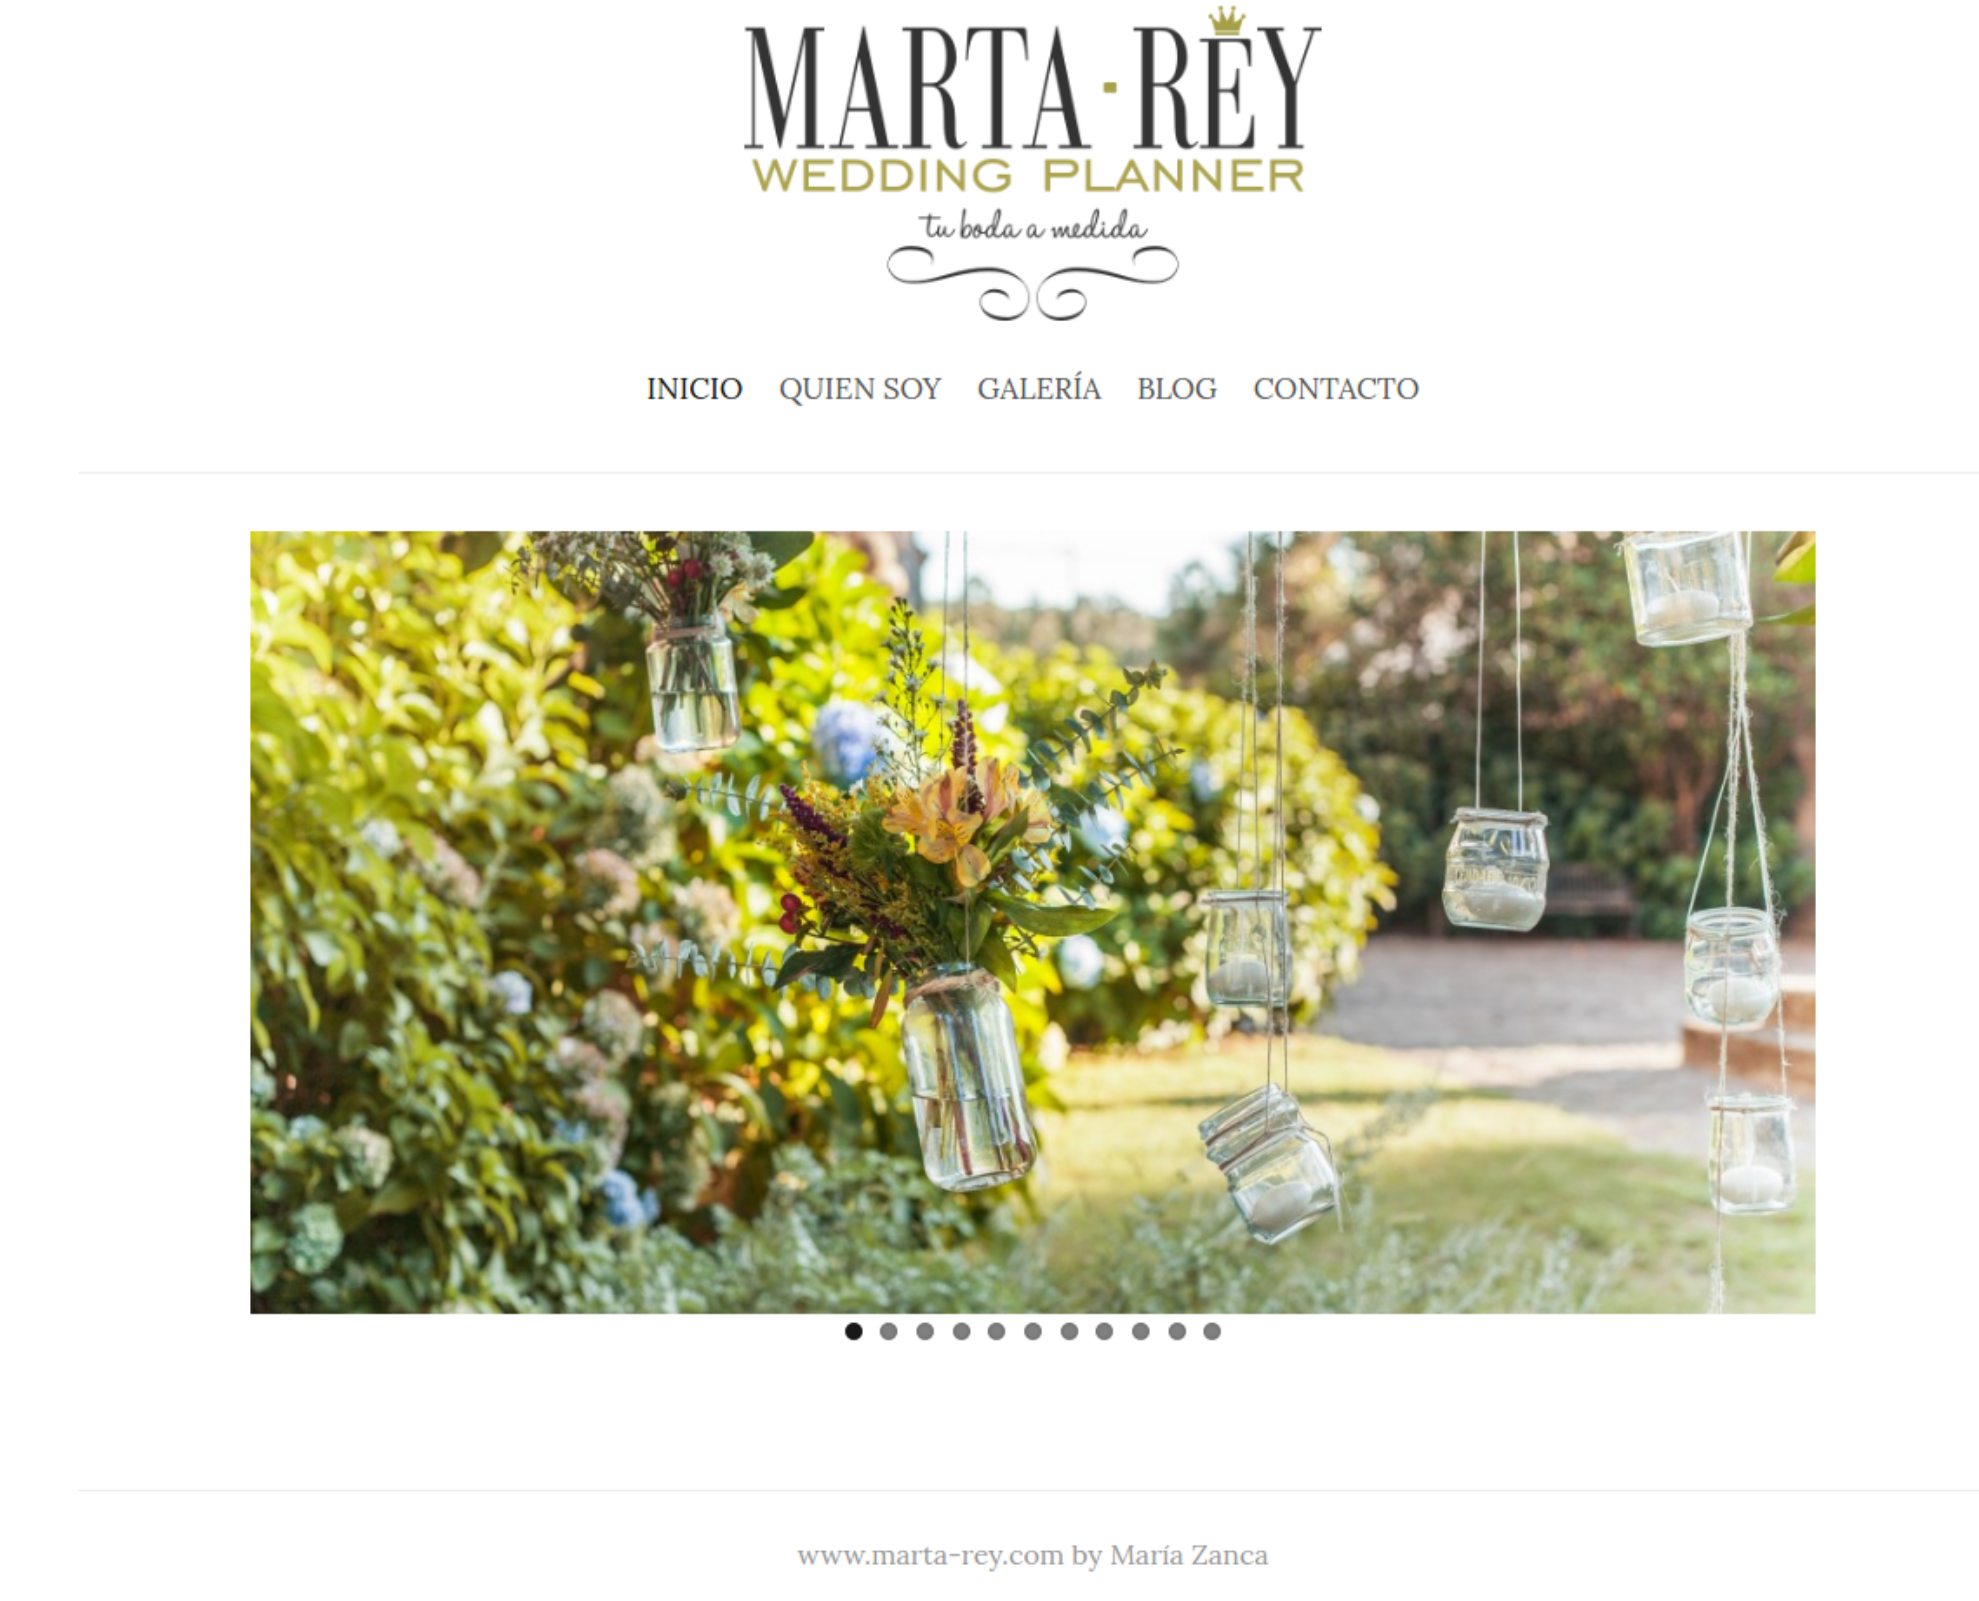 web marta-rey wedding planner